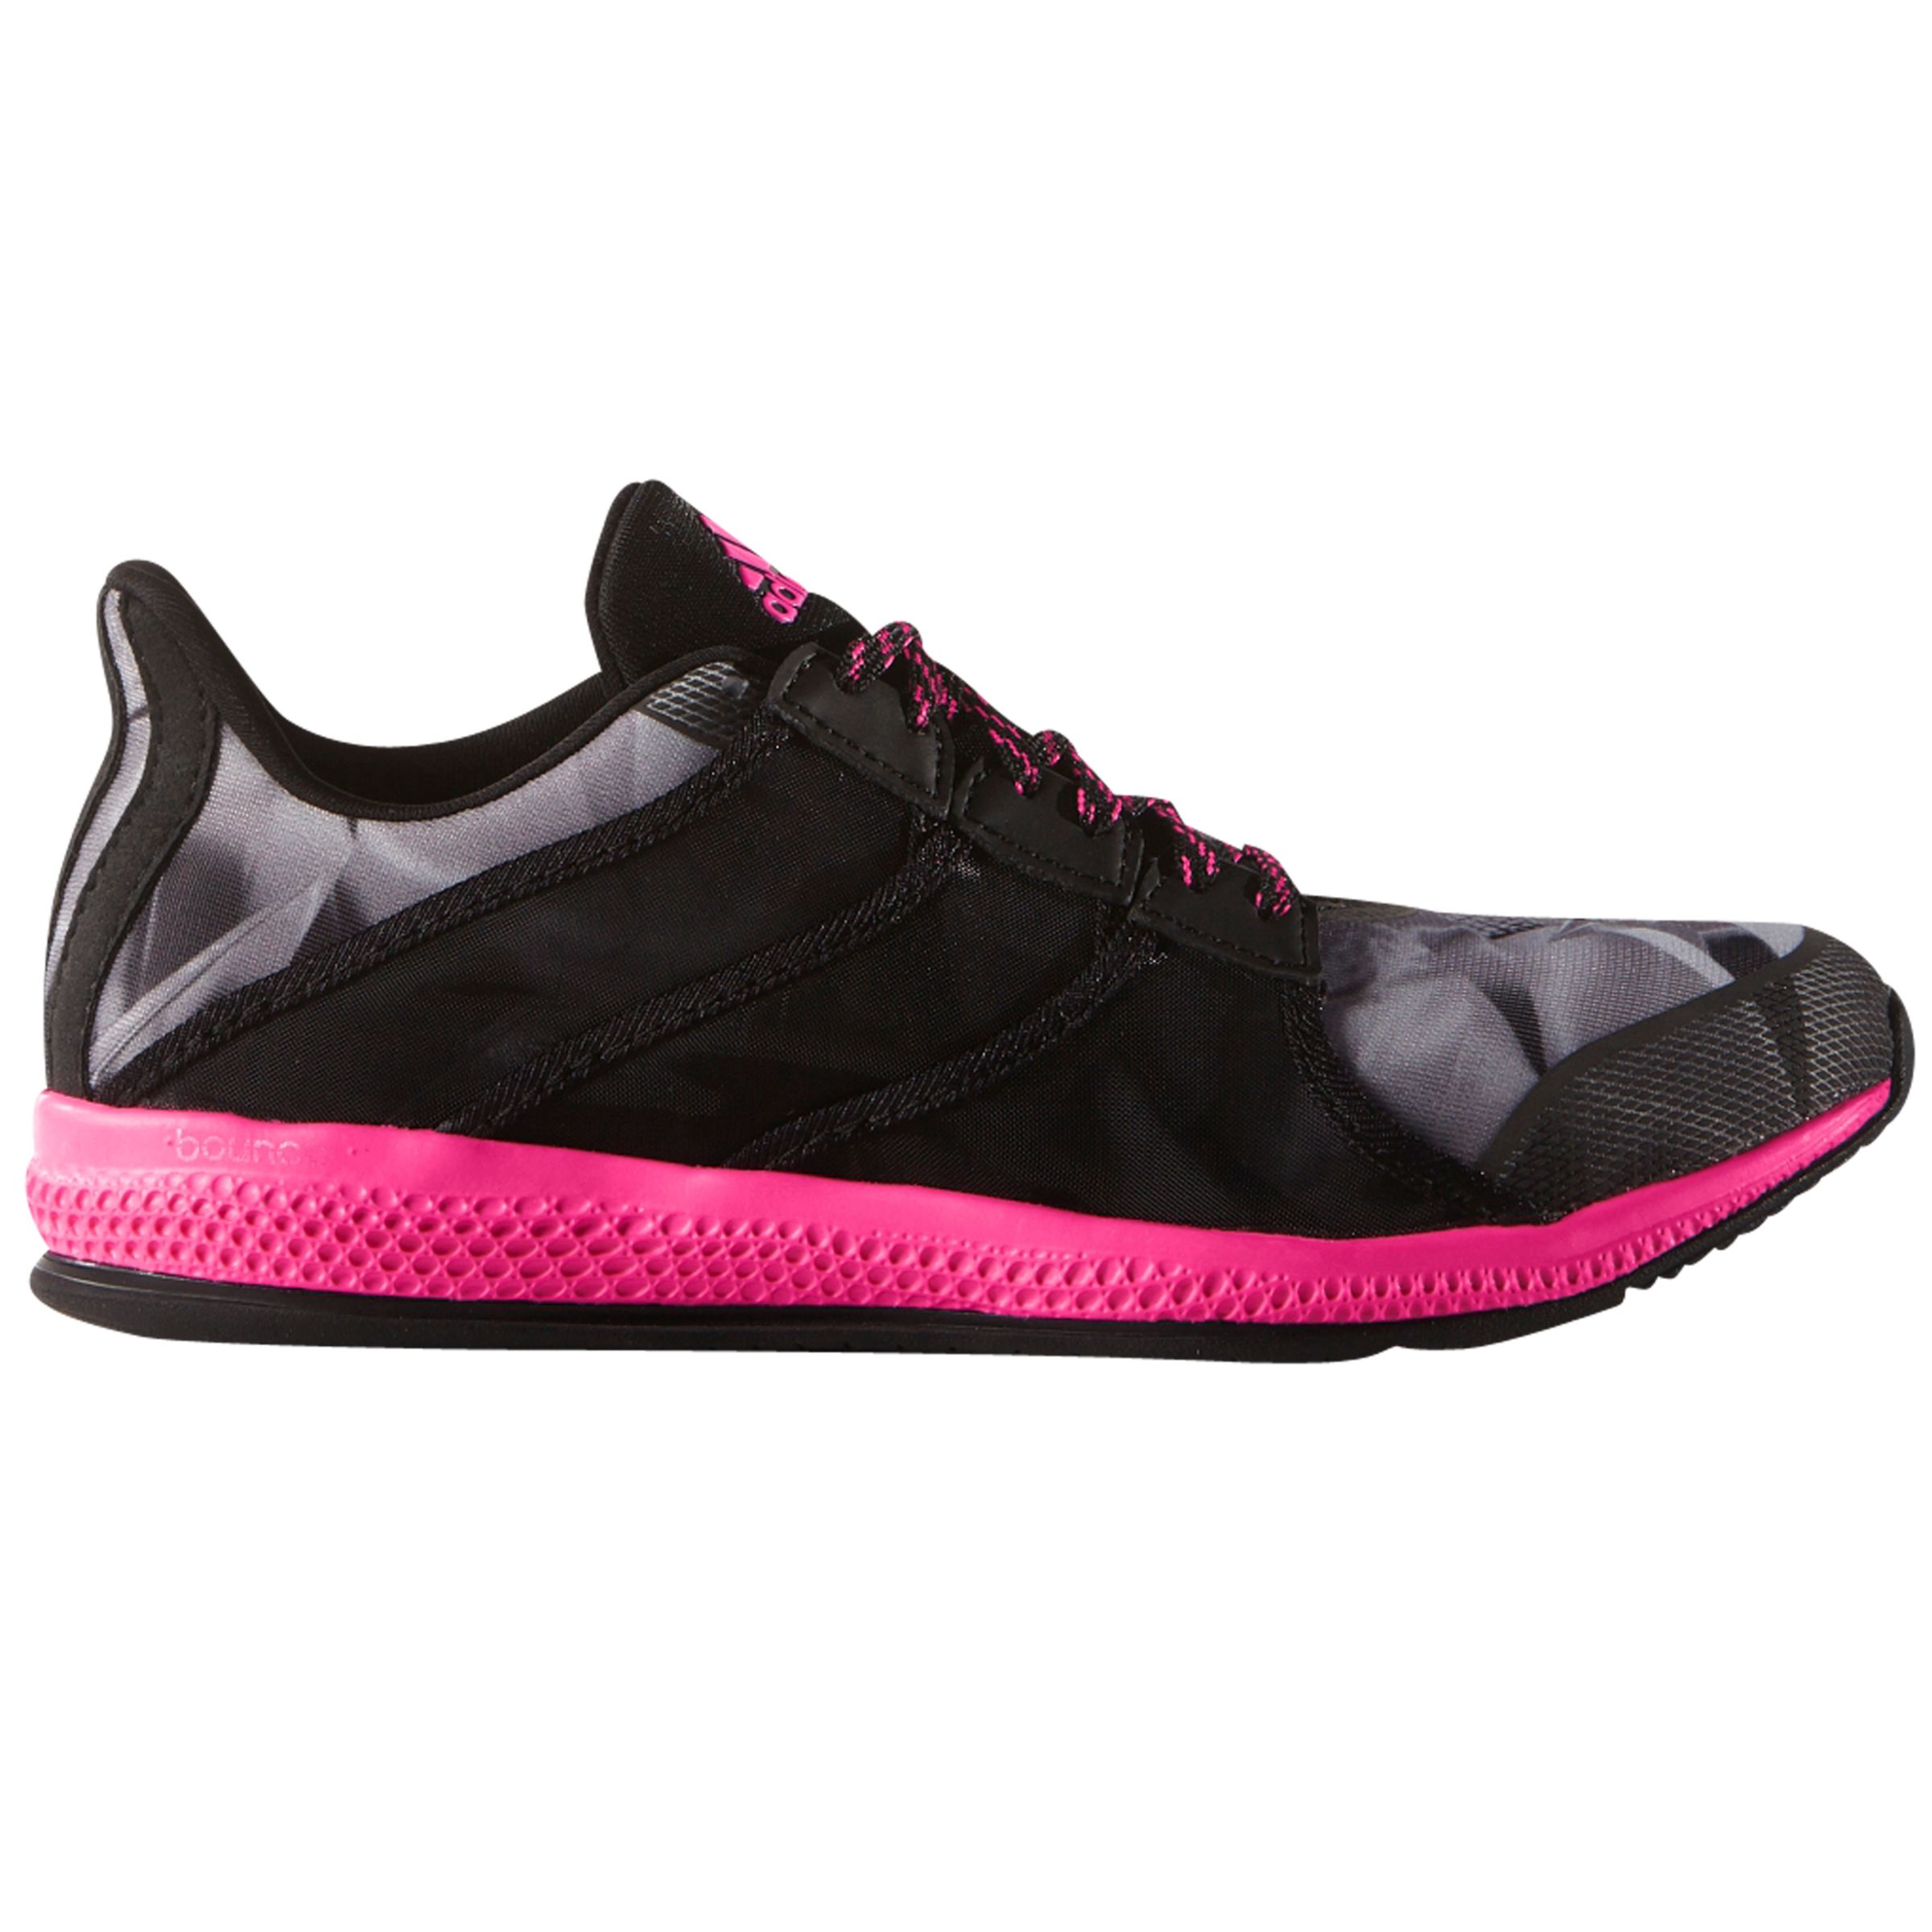 a5d187fc1 Adidas Gymbreaker Bounce Women s Cross Trainers